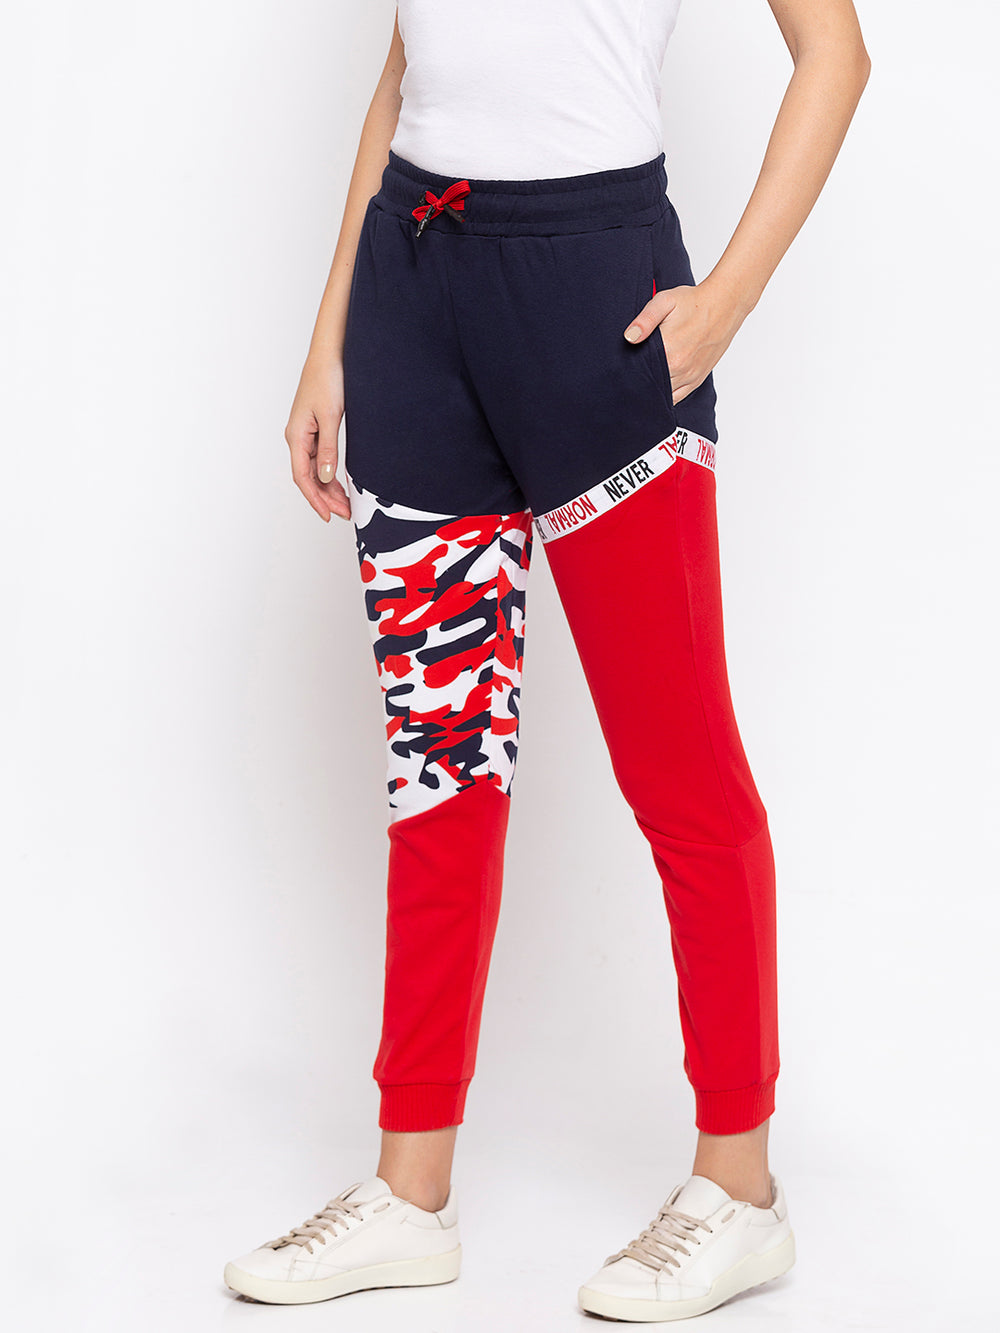 Red Camouflage Print Never Normal Taped Regular-Fit Joggers